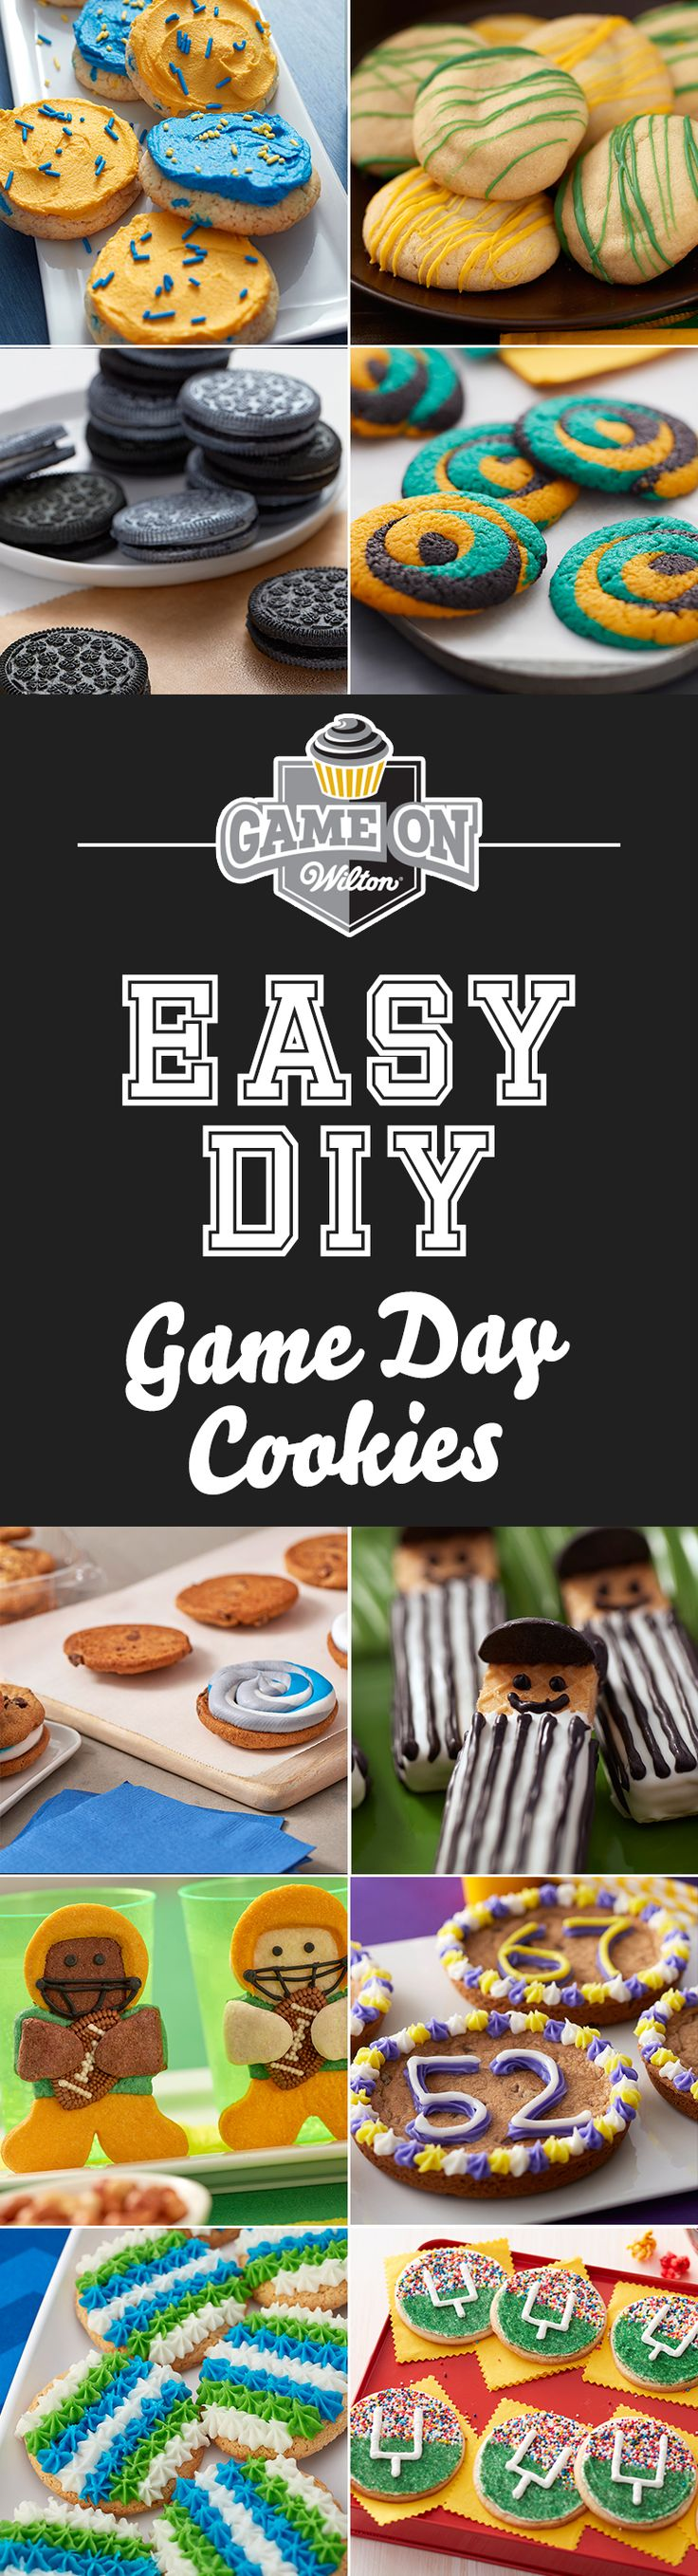 Easy DIY Game Day Cookies - Can't decide what to bring to a tailgate or game day party? You can never go wrong with cookies! Cookies make the perfect game day sweets as they are versatile and easy to make; and you can decorate them in your favorite team's colors. So, whether you like your cookies sandwiched, stuffed, or decorated, here are 10 easy DIY game day cookies that fans will definitely root for!